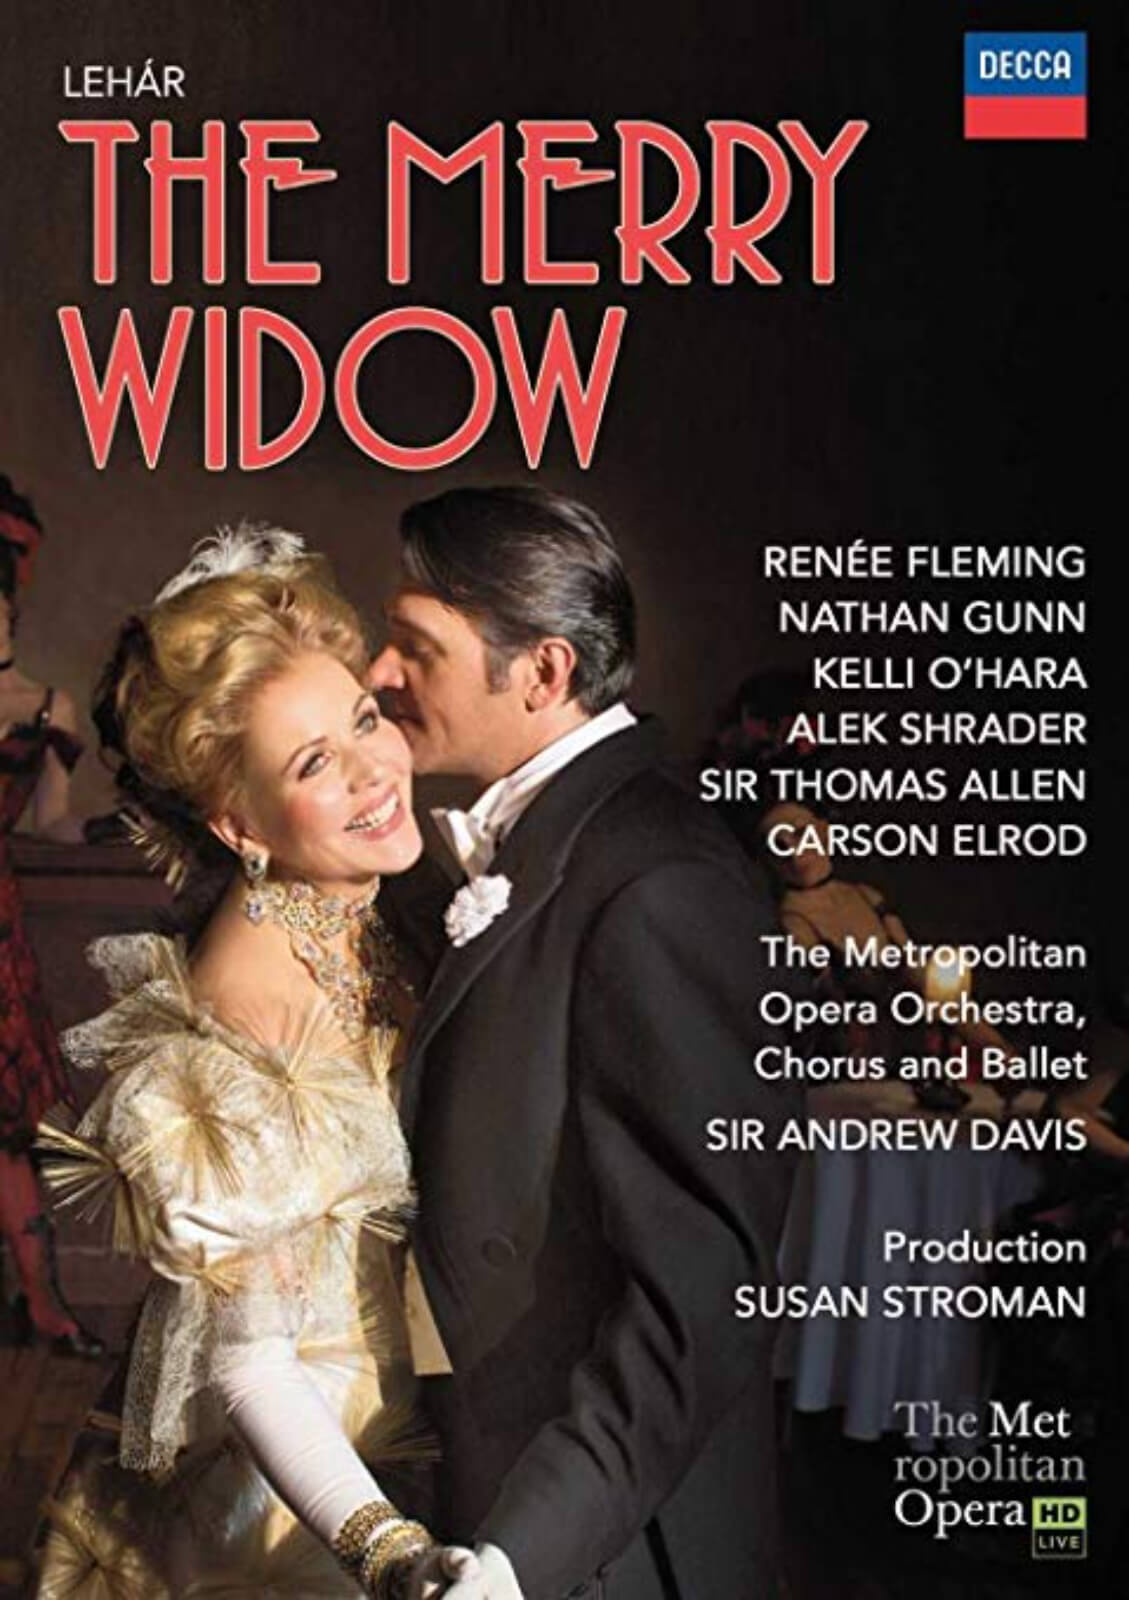 Poster for The Met Opera HD Live show. Featuring Renée Fleming and Nathan Gunn.